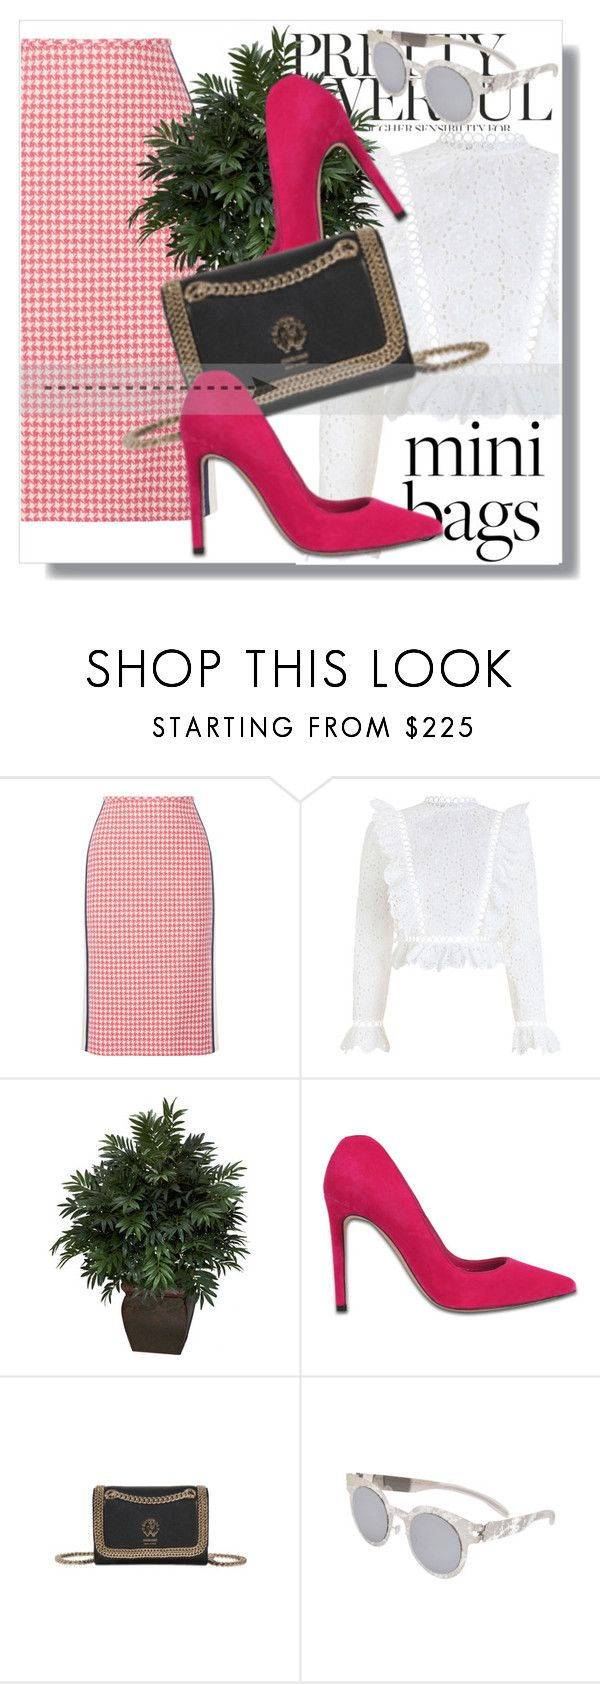 """""""Monnier Freres !!"""" by dianagrigoryan ❤ liked on Polyvore featuring Prada, Zimmermann, Alexander McQueen, Roberto Cavalli and Maison Margiela"""